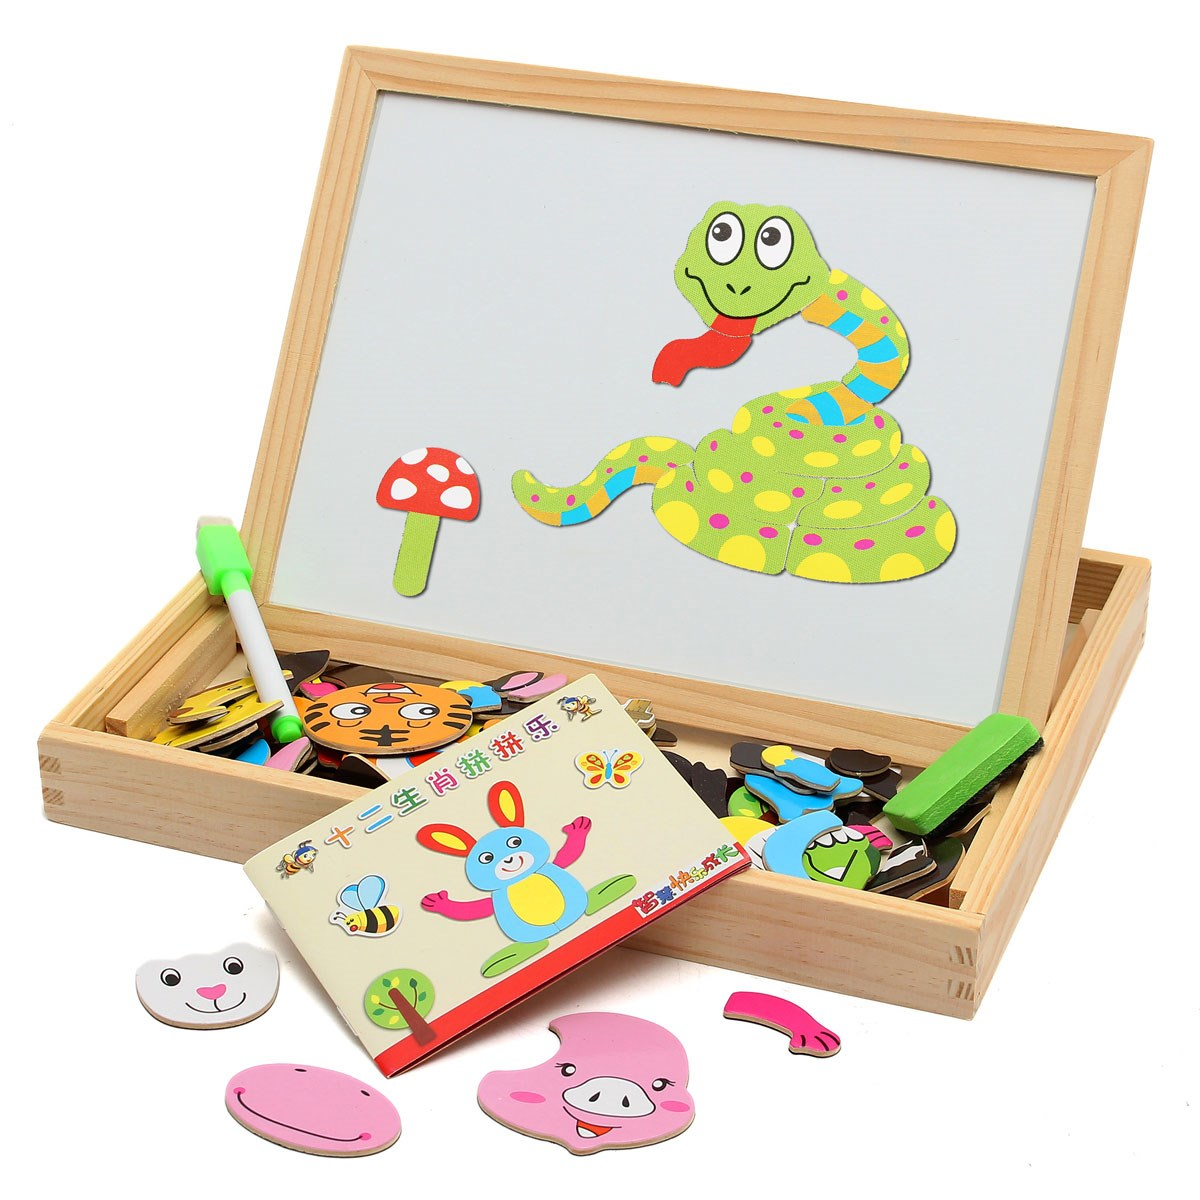 New-Arrival-Drawing-Writing-Board-Magnetic-Puzzle-Double-Easel-Kid-Wooden-Toy-Gift-Children-Intelligence-Development-Toy-2